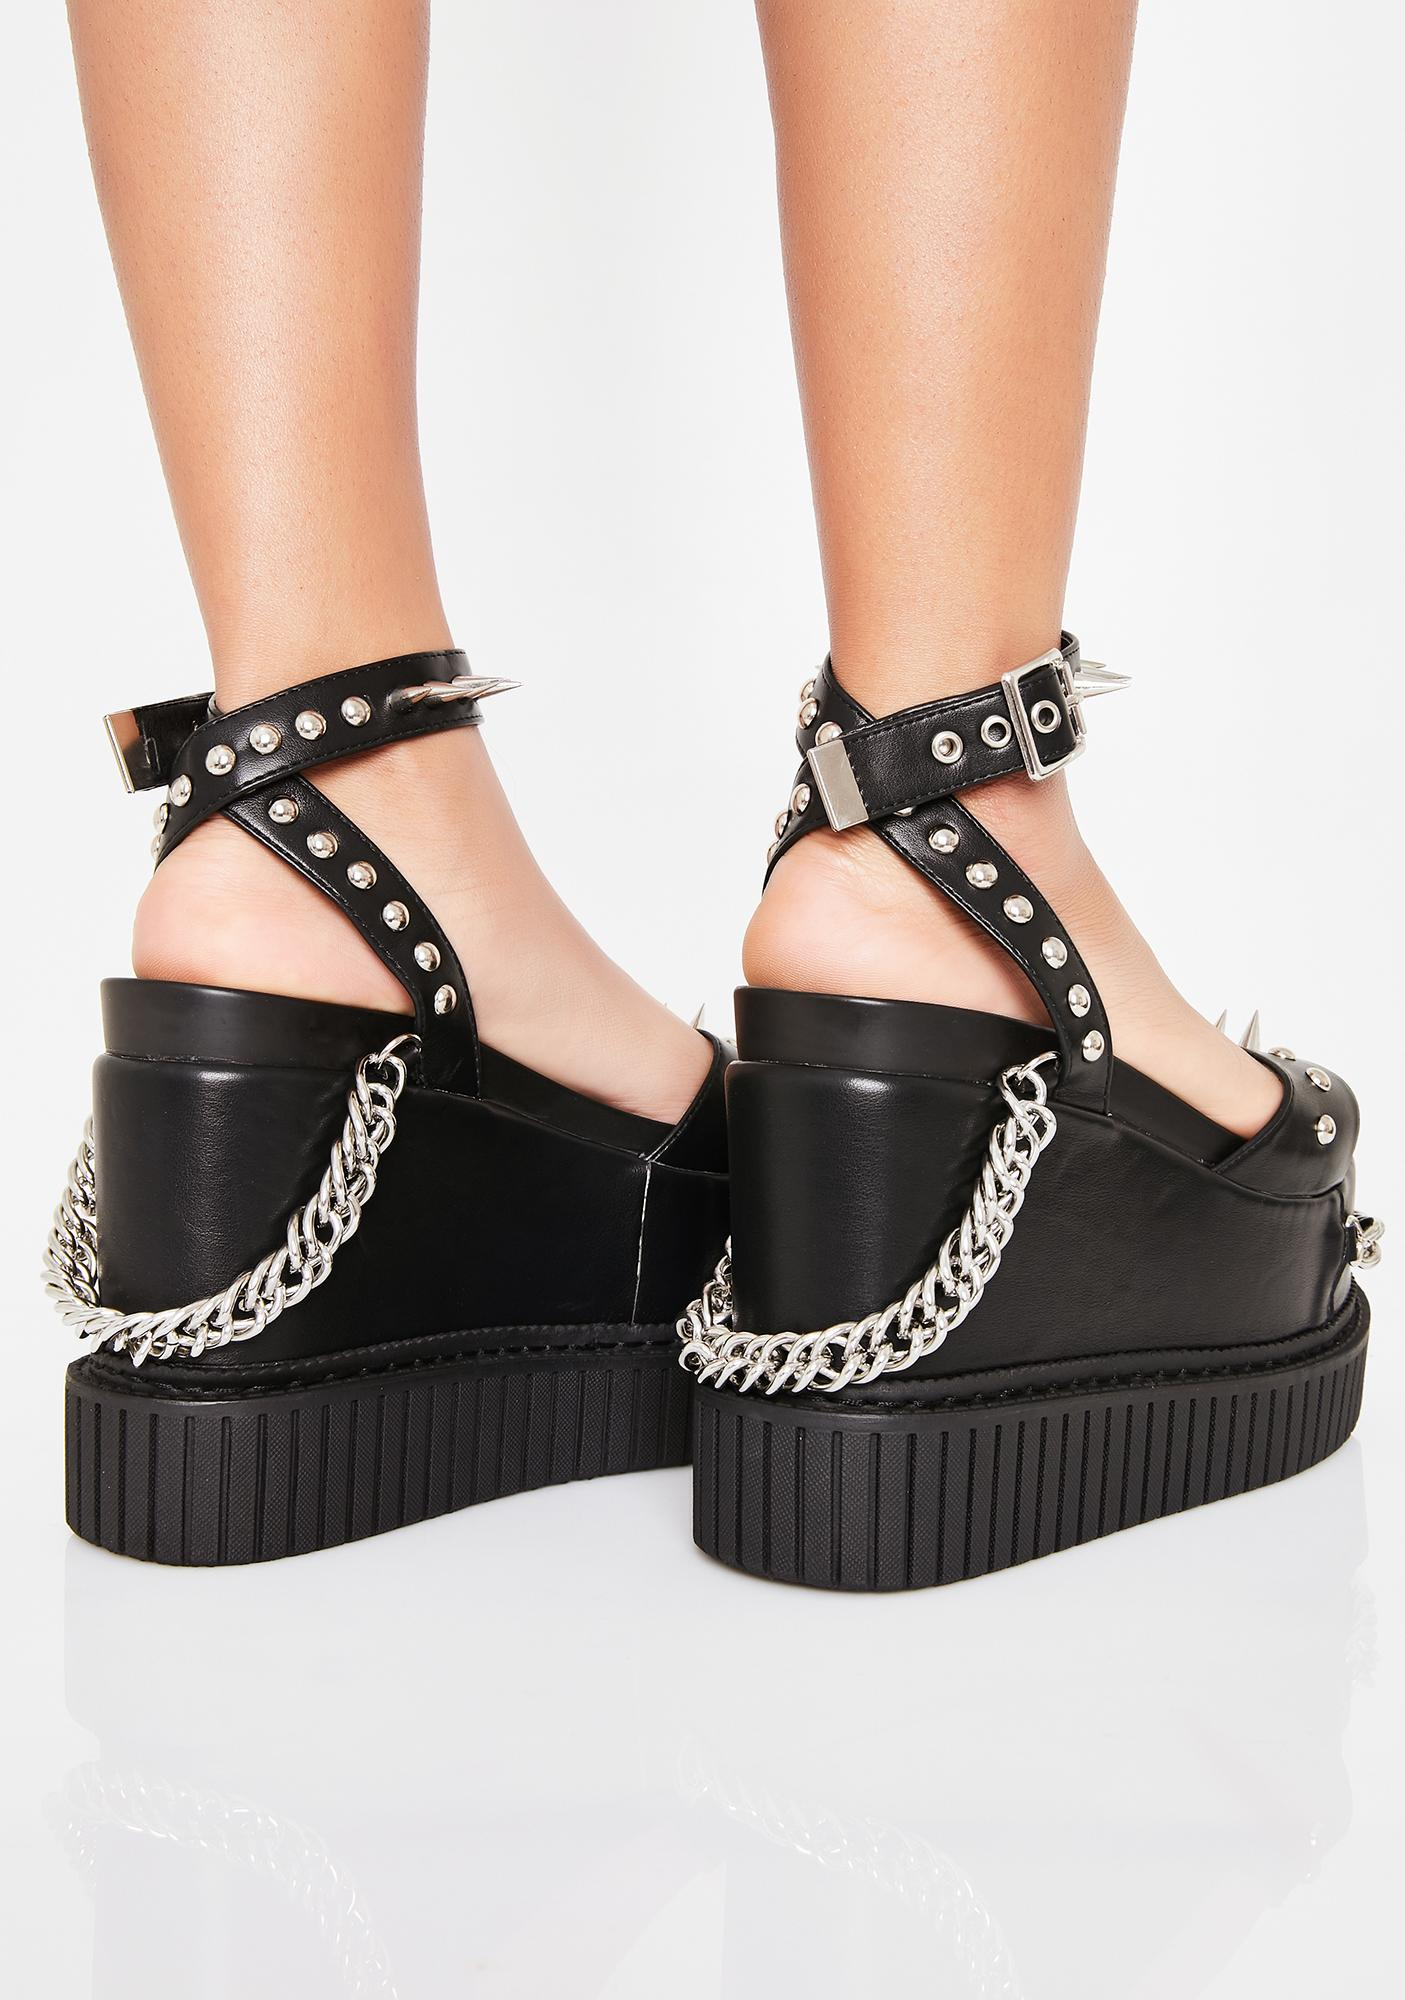 Lamoda Next Level Creeper Platform Sandals